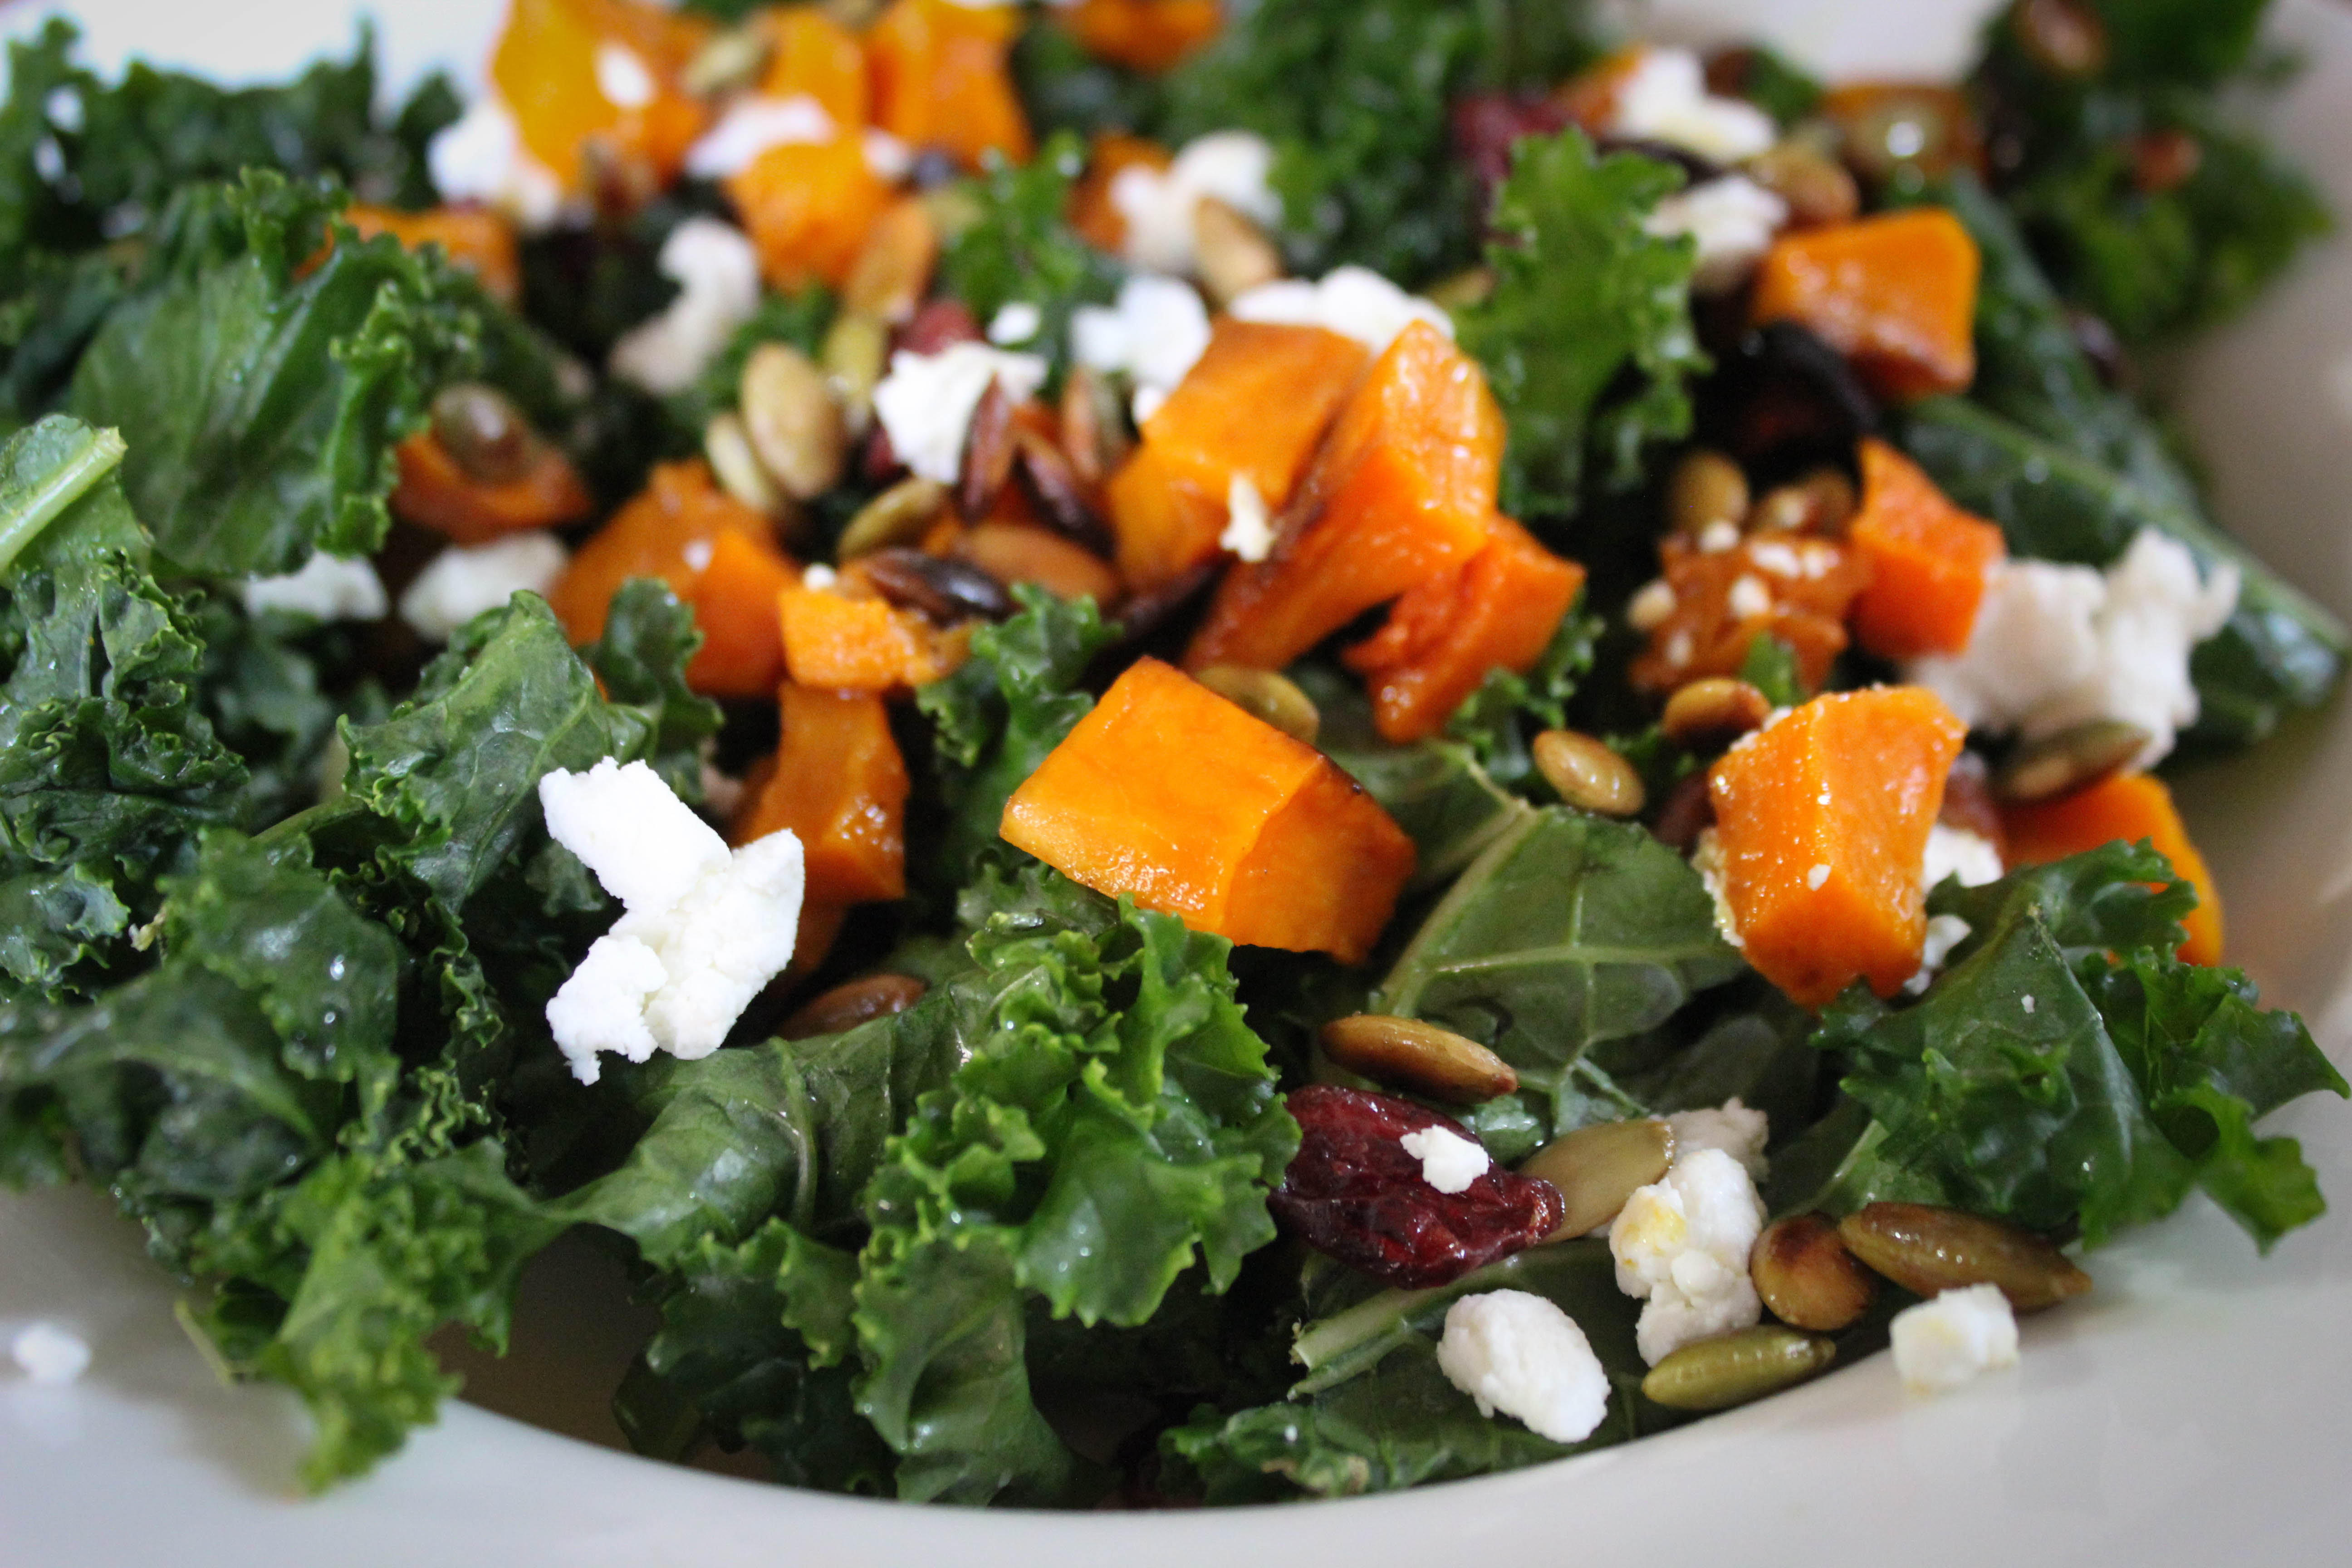 Harvest Kale & Roasted Squash Salad